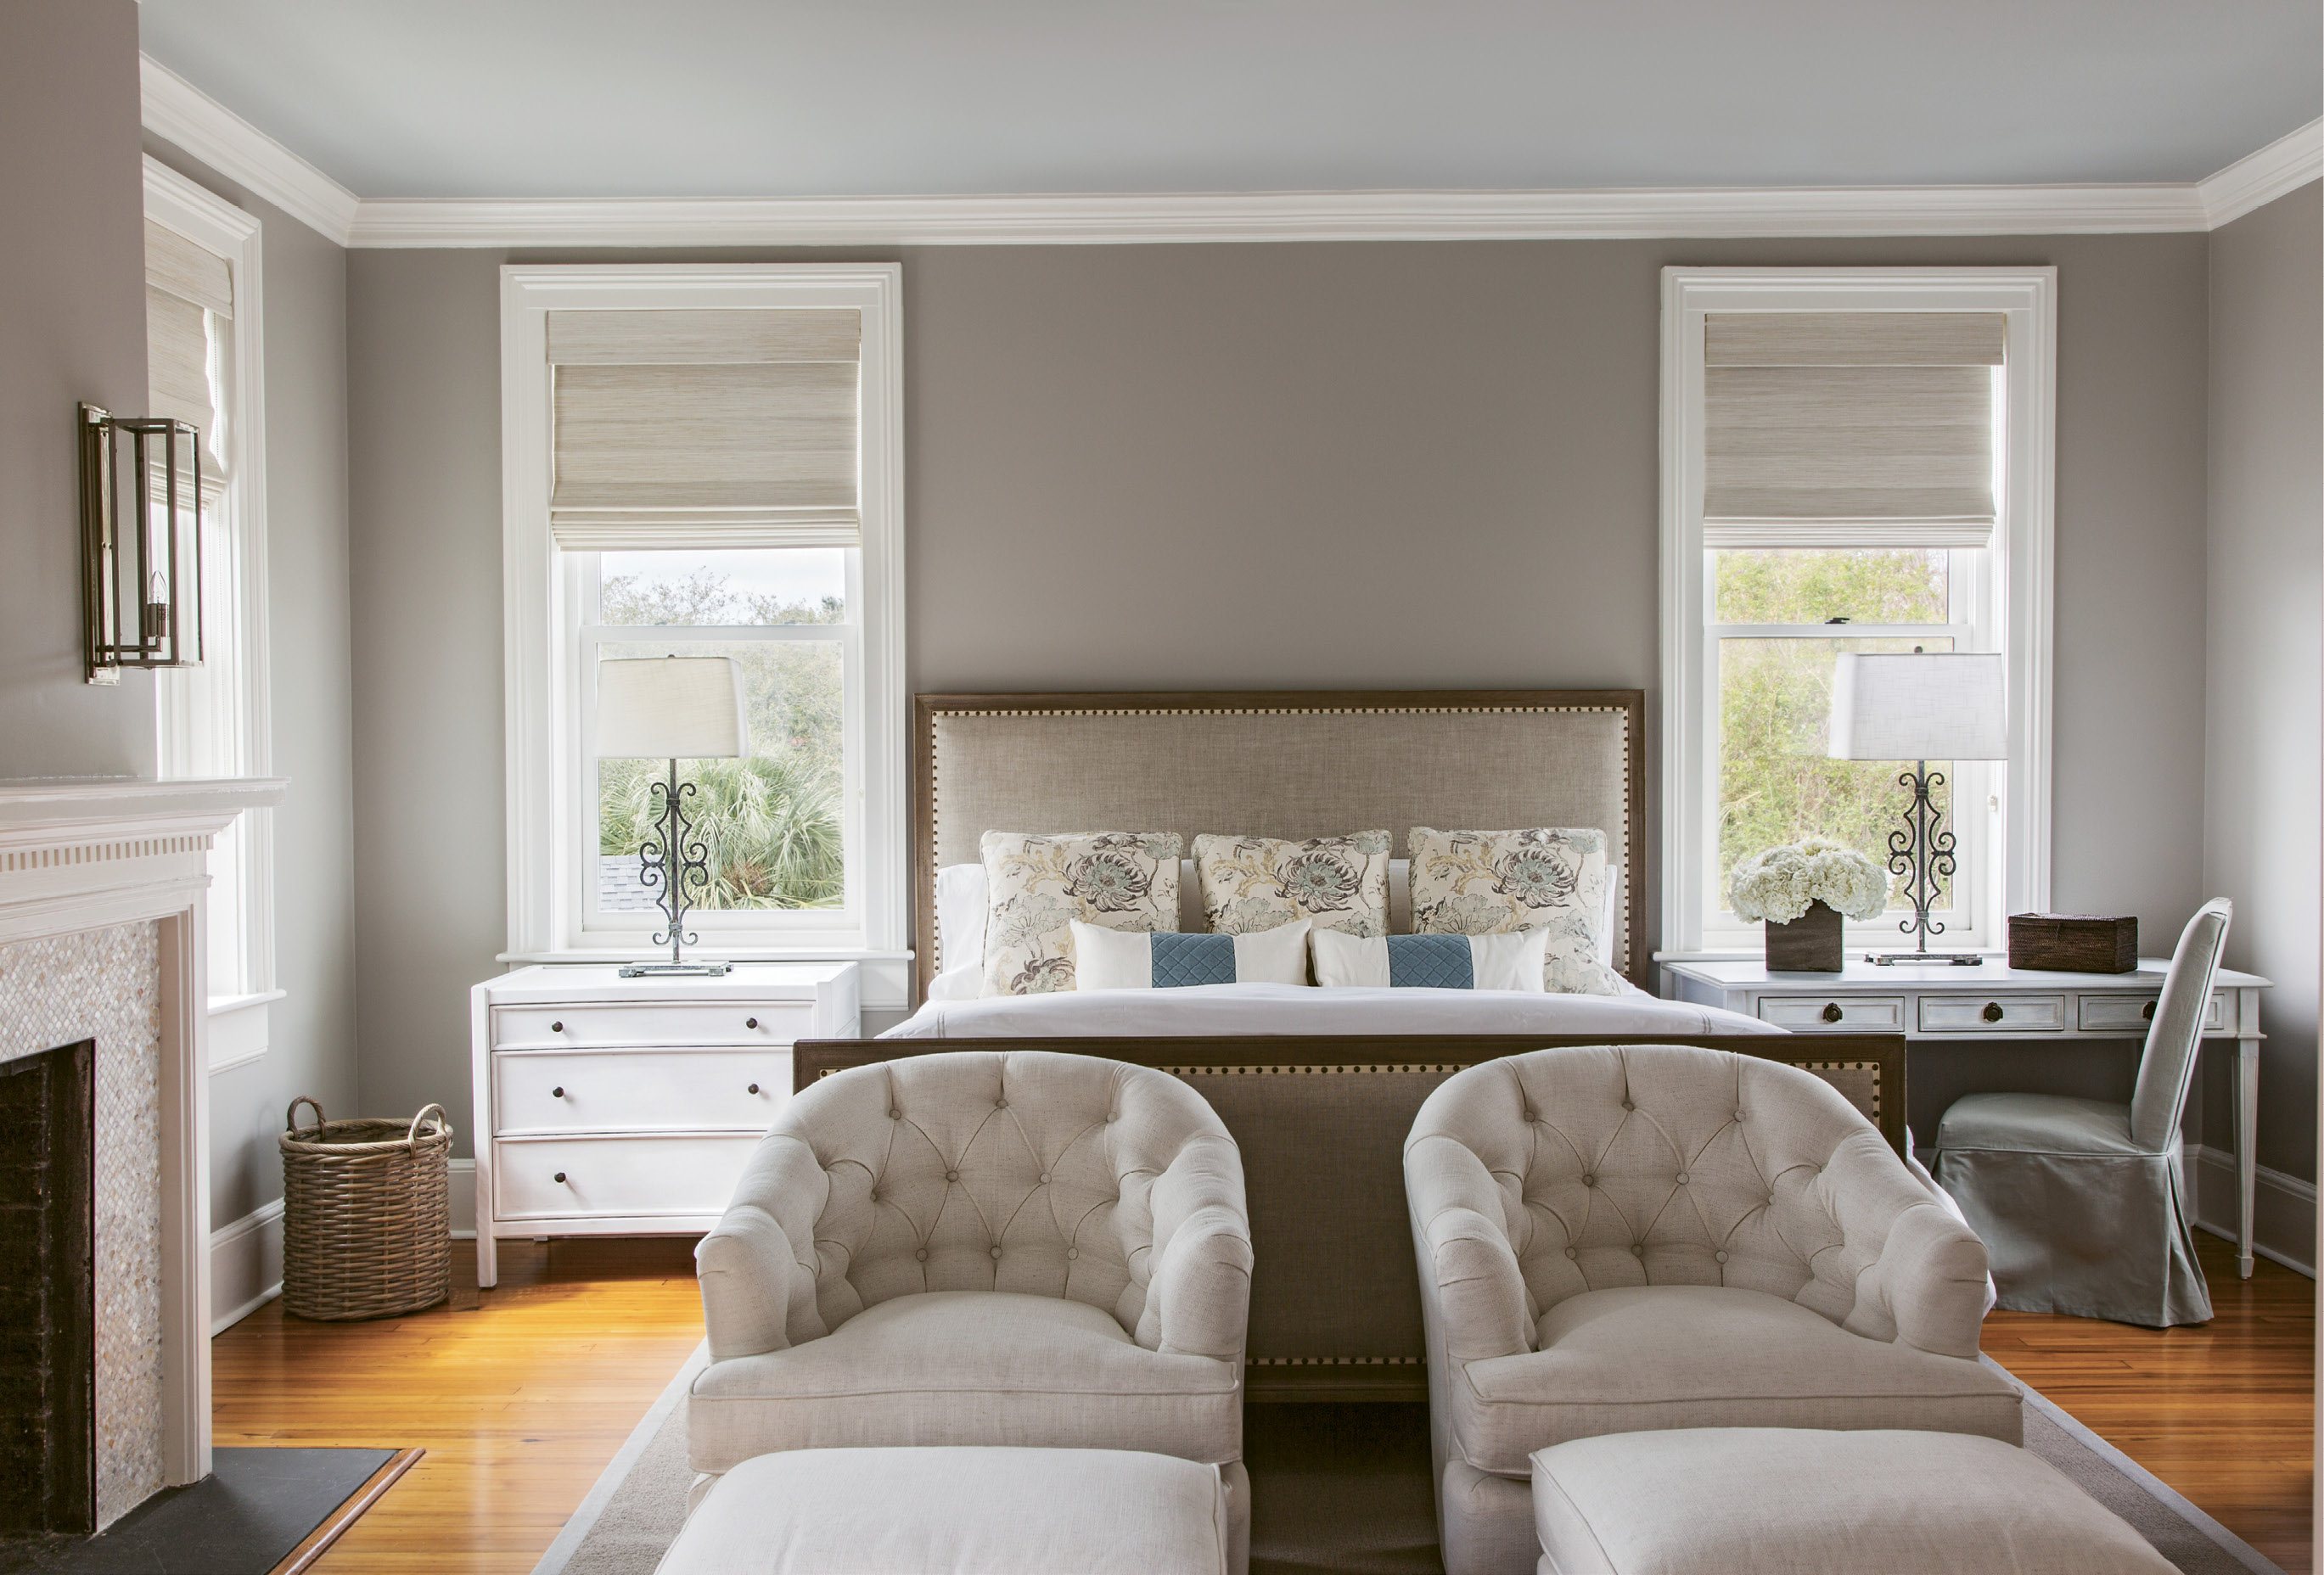 """Neutral Territory: For the master bedroom, Peake worked with a neutral palette conducive to relaxation: Benjamin Moore """"Cumulus Cloud"""" covers the walls, with """"Half Moon Crest"""" on the ceiling. The custom headboard was upholstered in Belgian linen. Natural woven shades provide privacy while still allowing for natural light."""